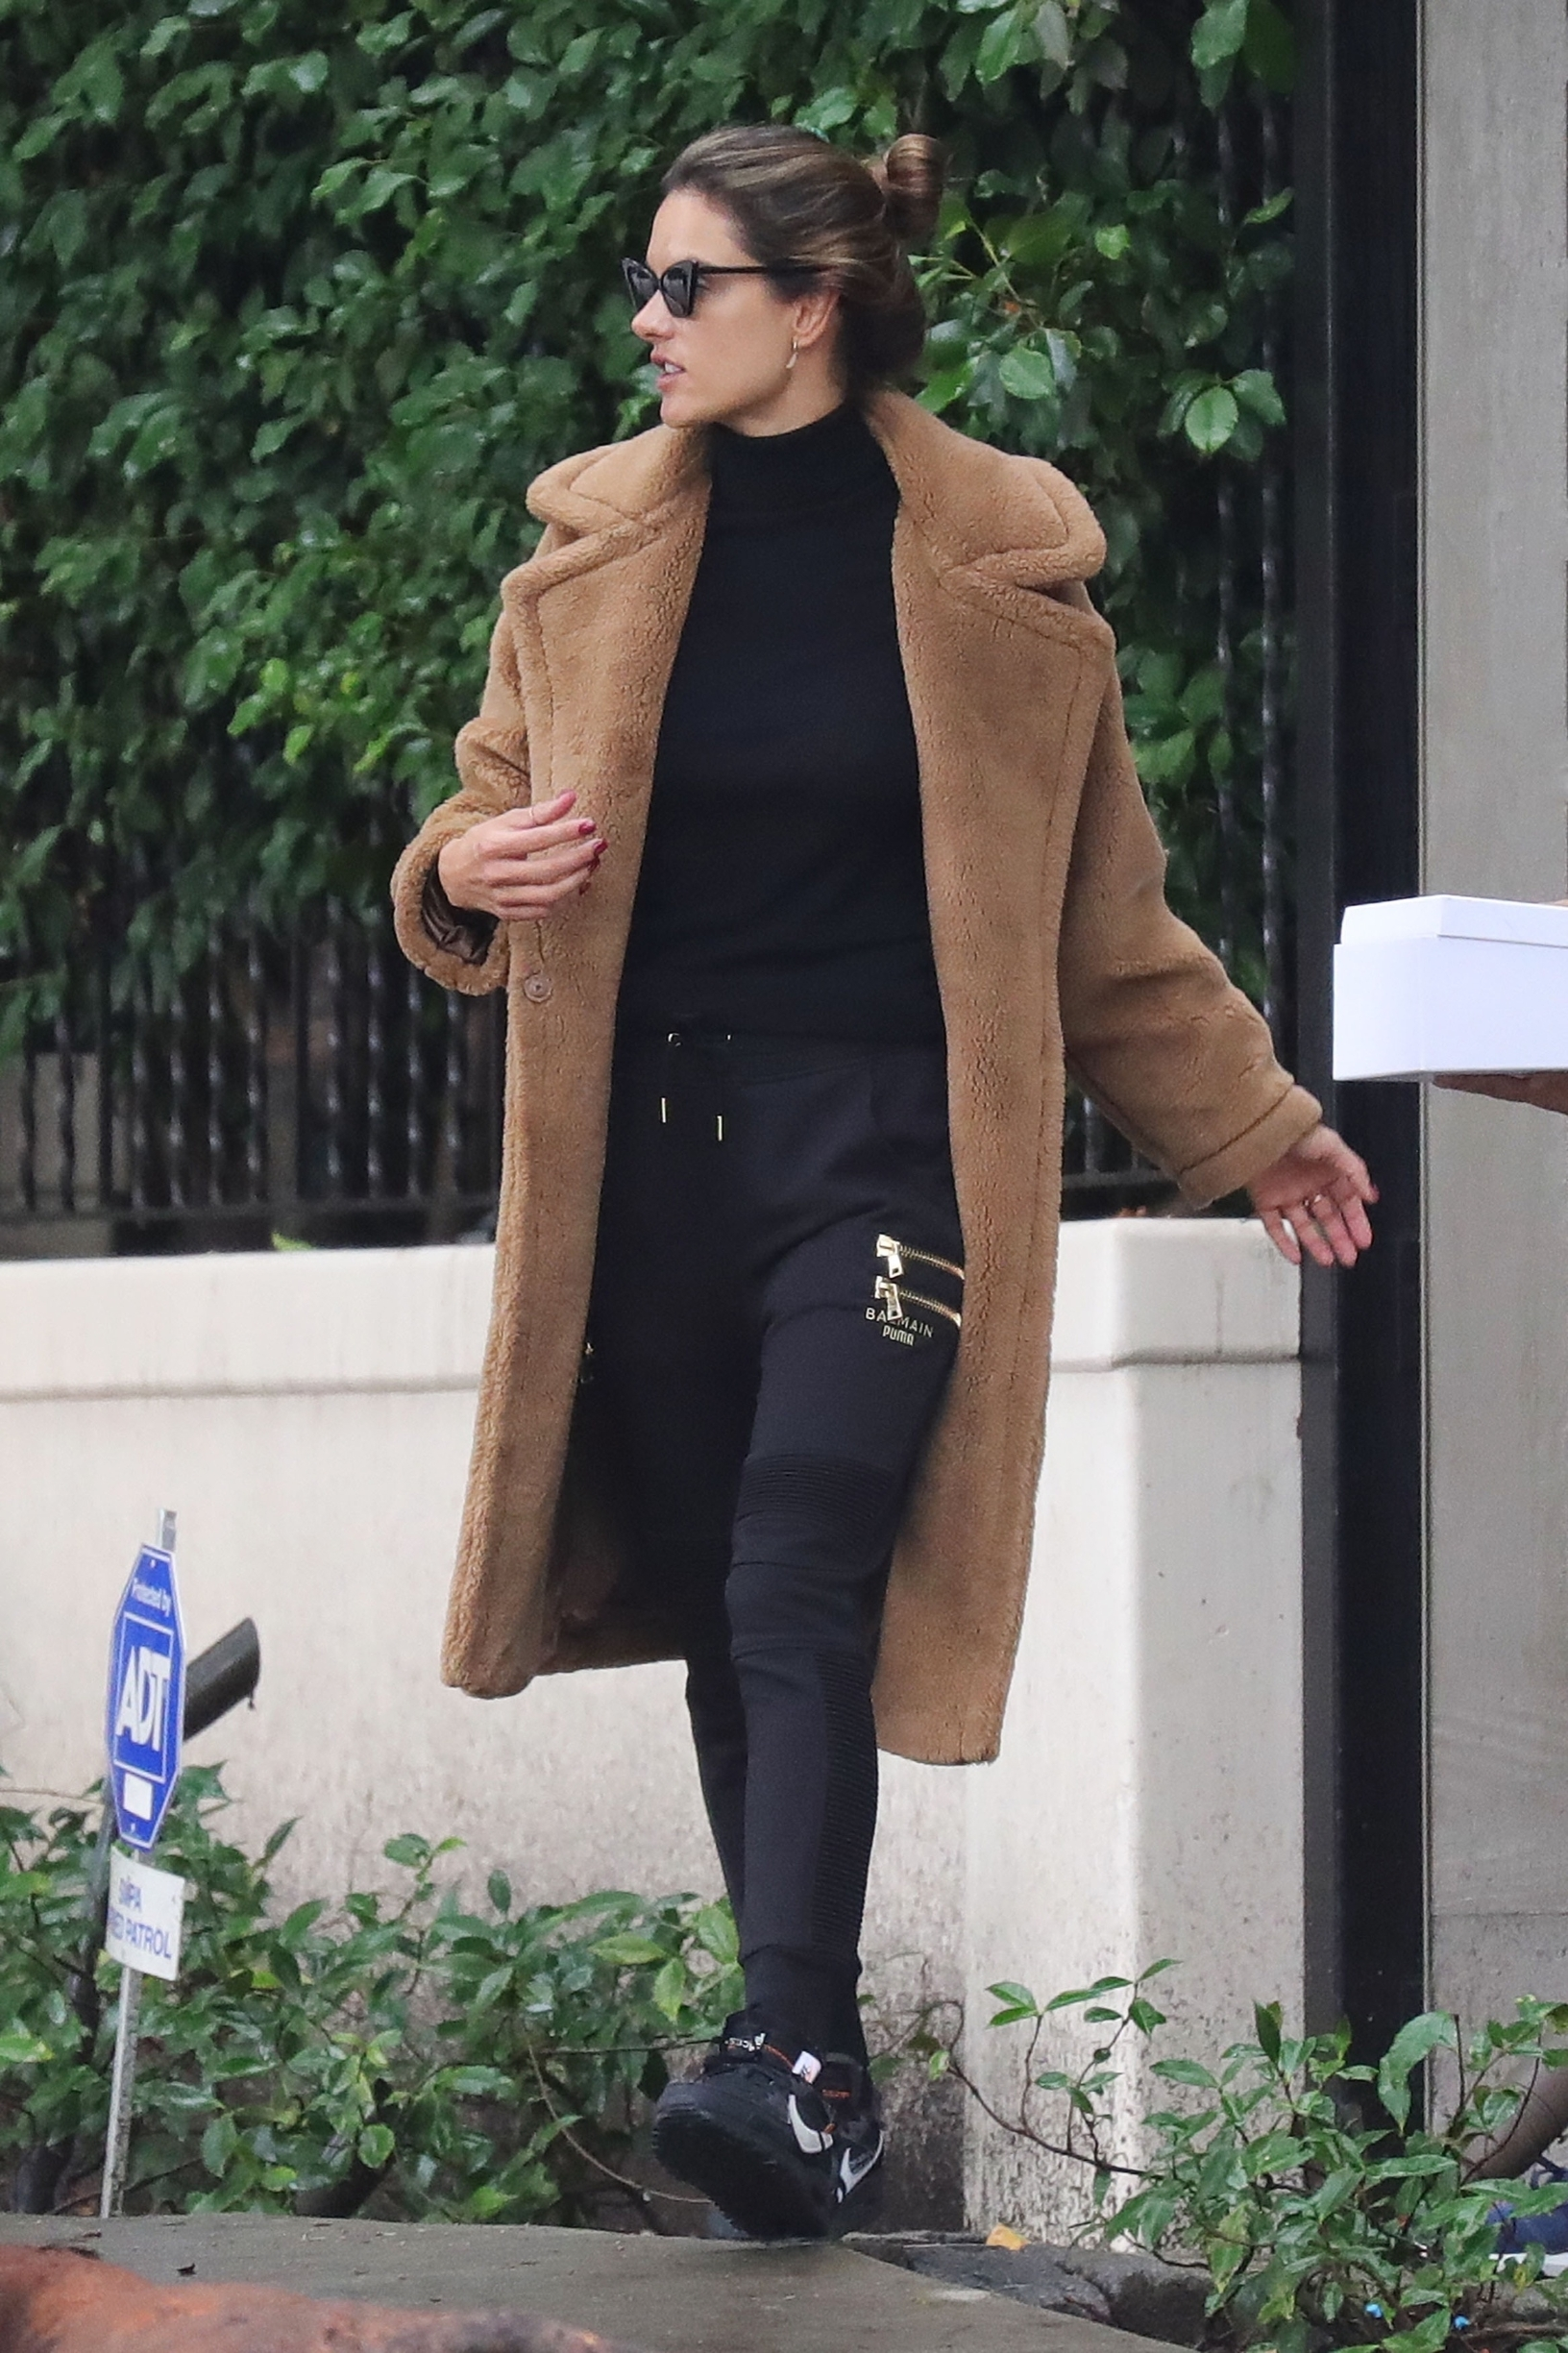 Brentwood, CA  - All dressed for winter, Alessandra Ambrosio walks to her waiting SUV to head to LAX.  Alessandra stays outfitted  BACKGRID USA 4 DECEMBER 2019, Image: 486389313, License: Rights-managed, Restrictions: , Model Release: no, Credit line: BACKGRID / BACKGRID / Backgrid USA / Profimedia